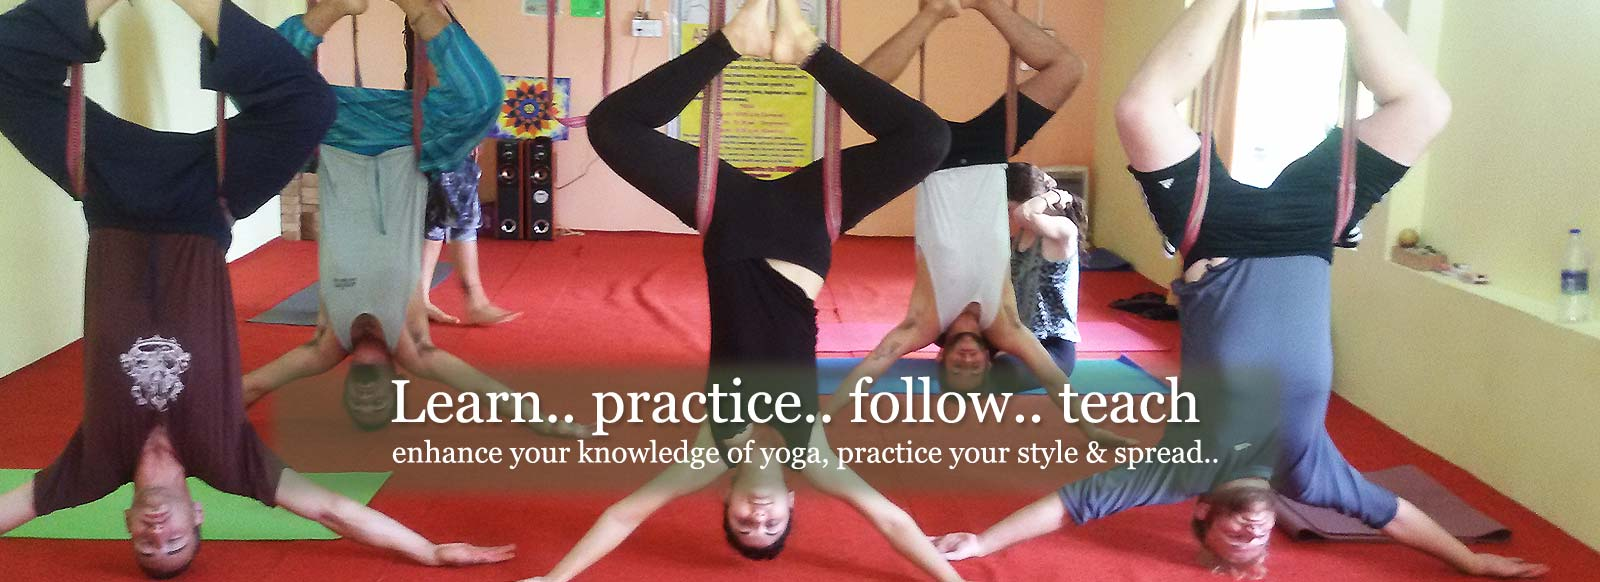 best yoga school in dharamsala, best yoga teacher in dharamsala